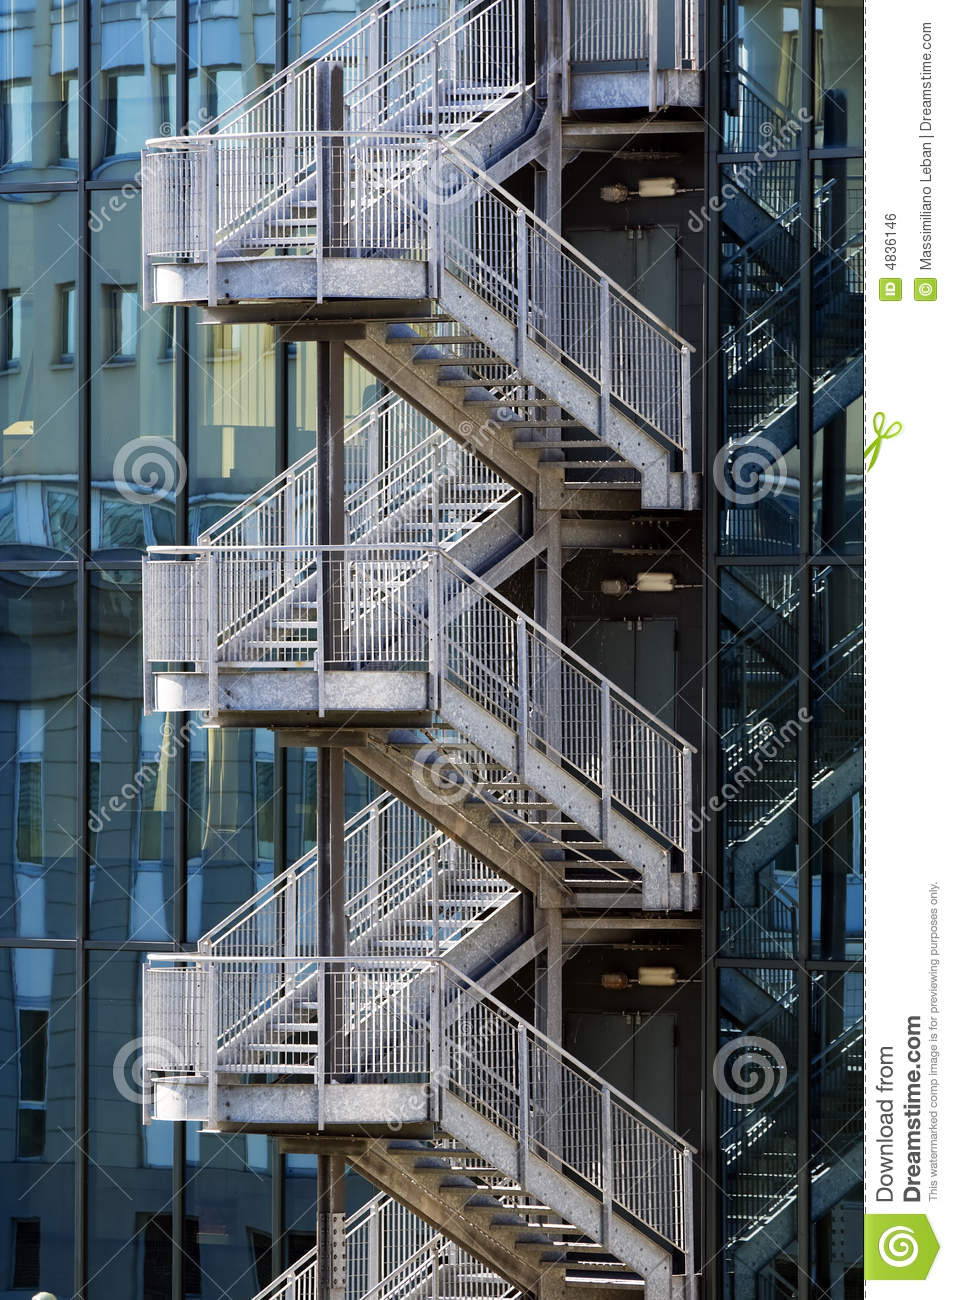 Stair Banister Fire Escape Stair Royalty Free Stock Image - Image: 4836146